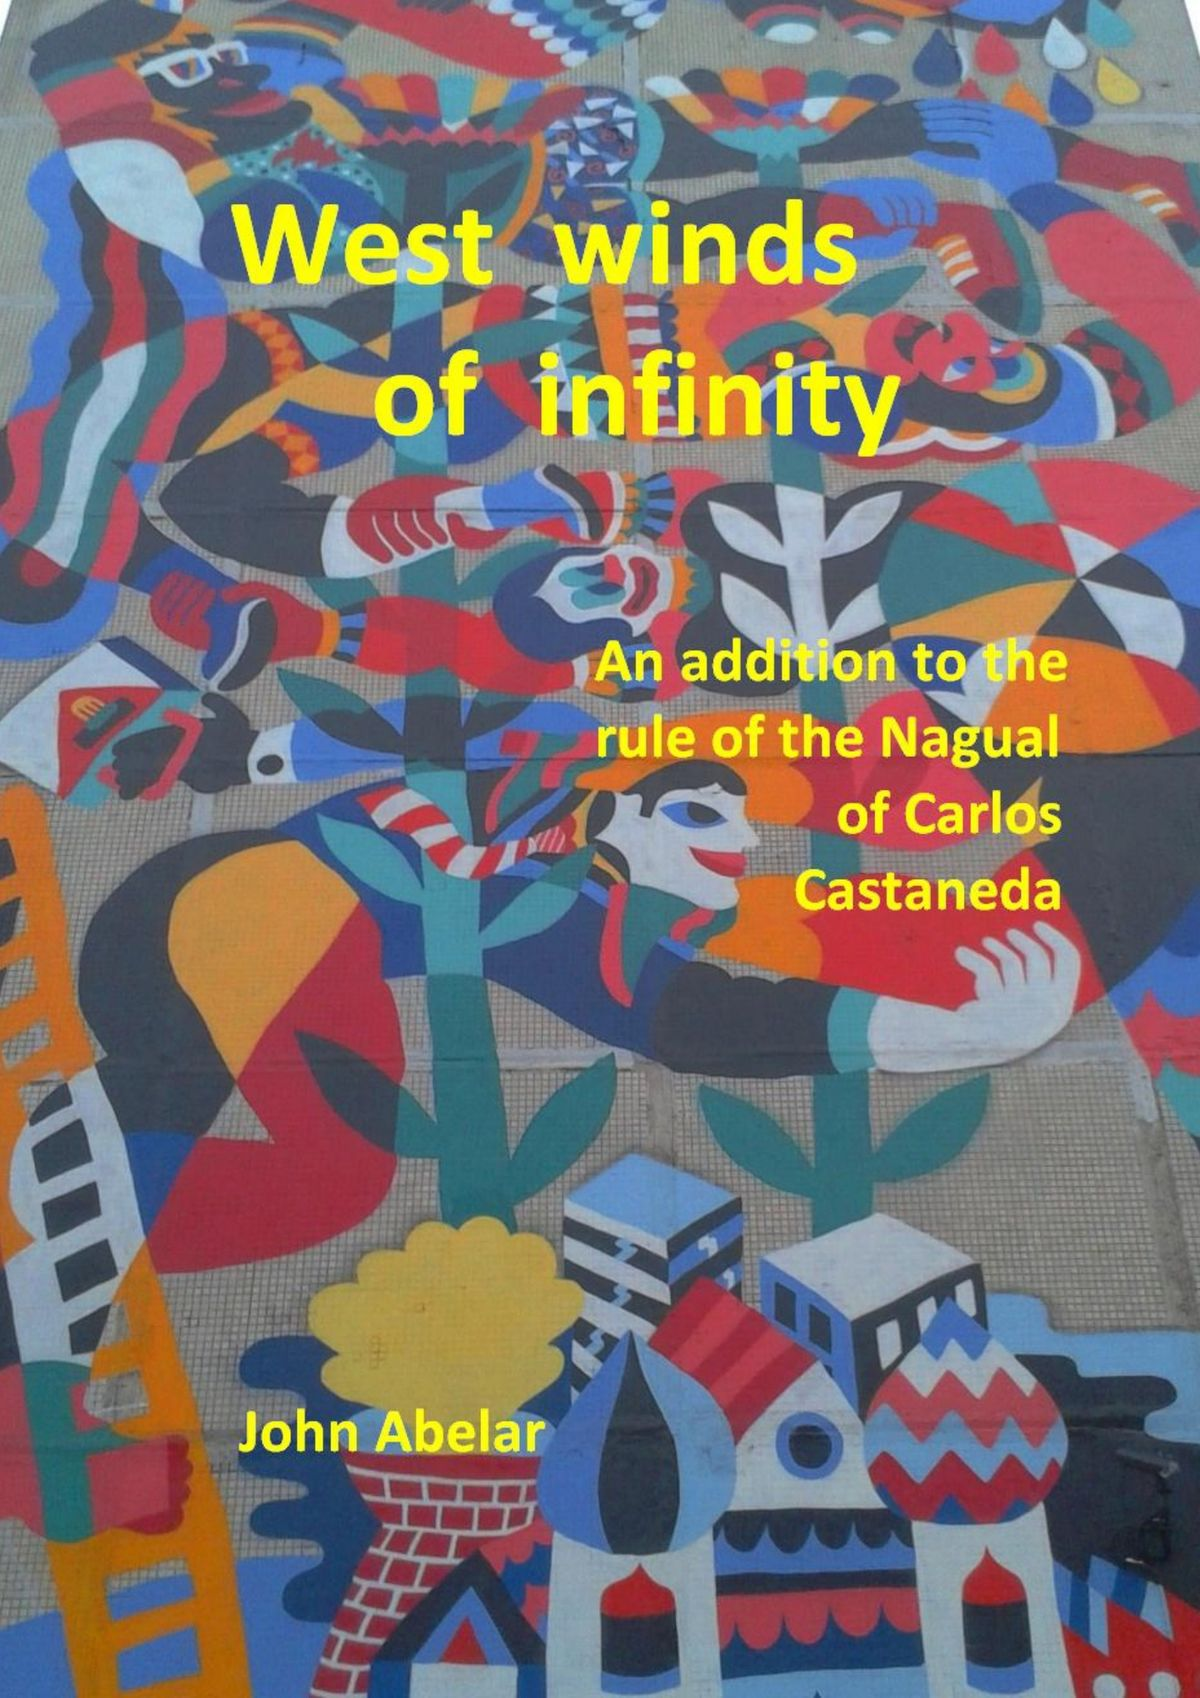 West winds of infinity. An addition to the rule of the Nagual of Carlos Castaneda_John Abelar